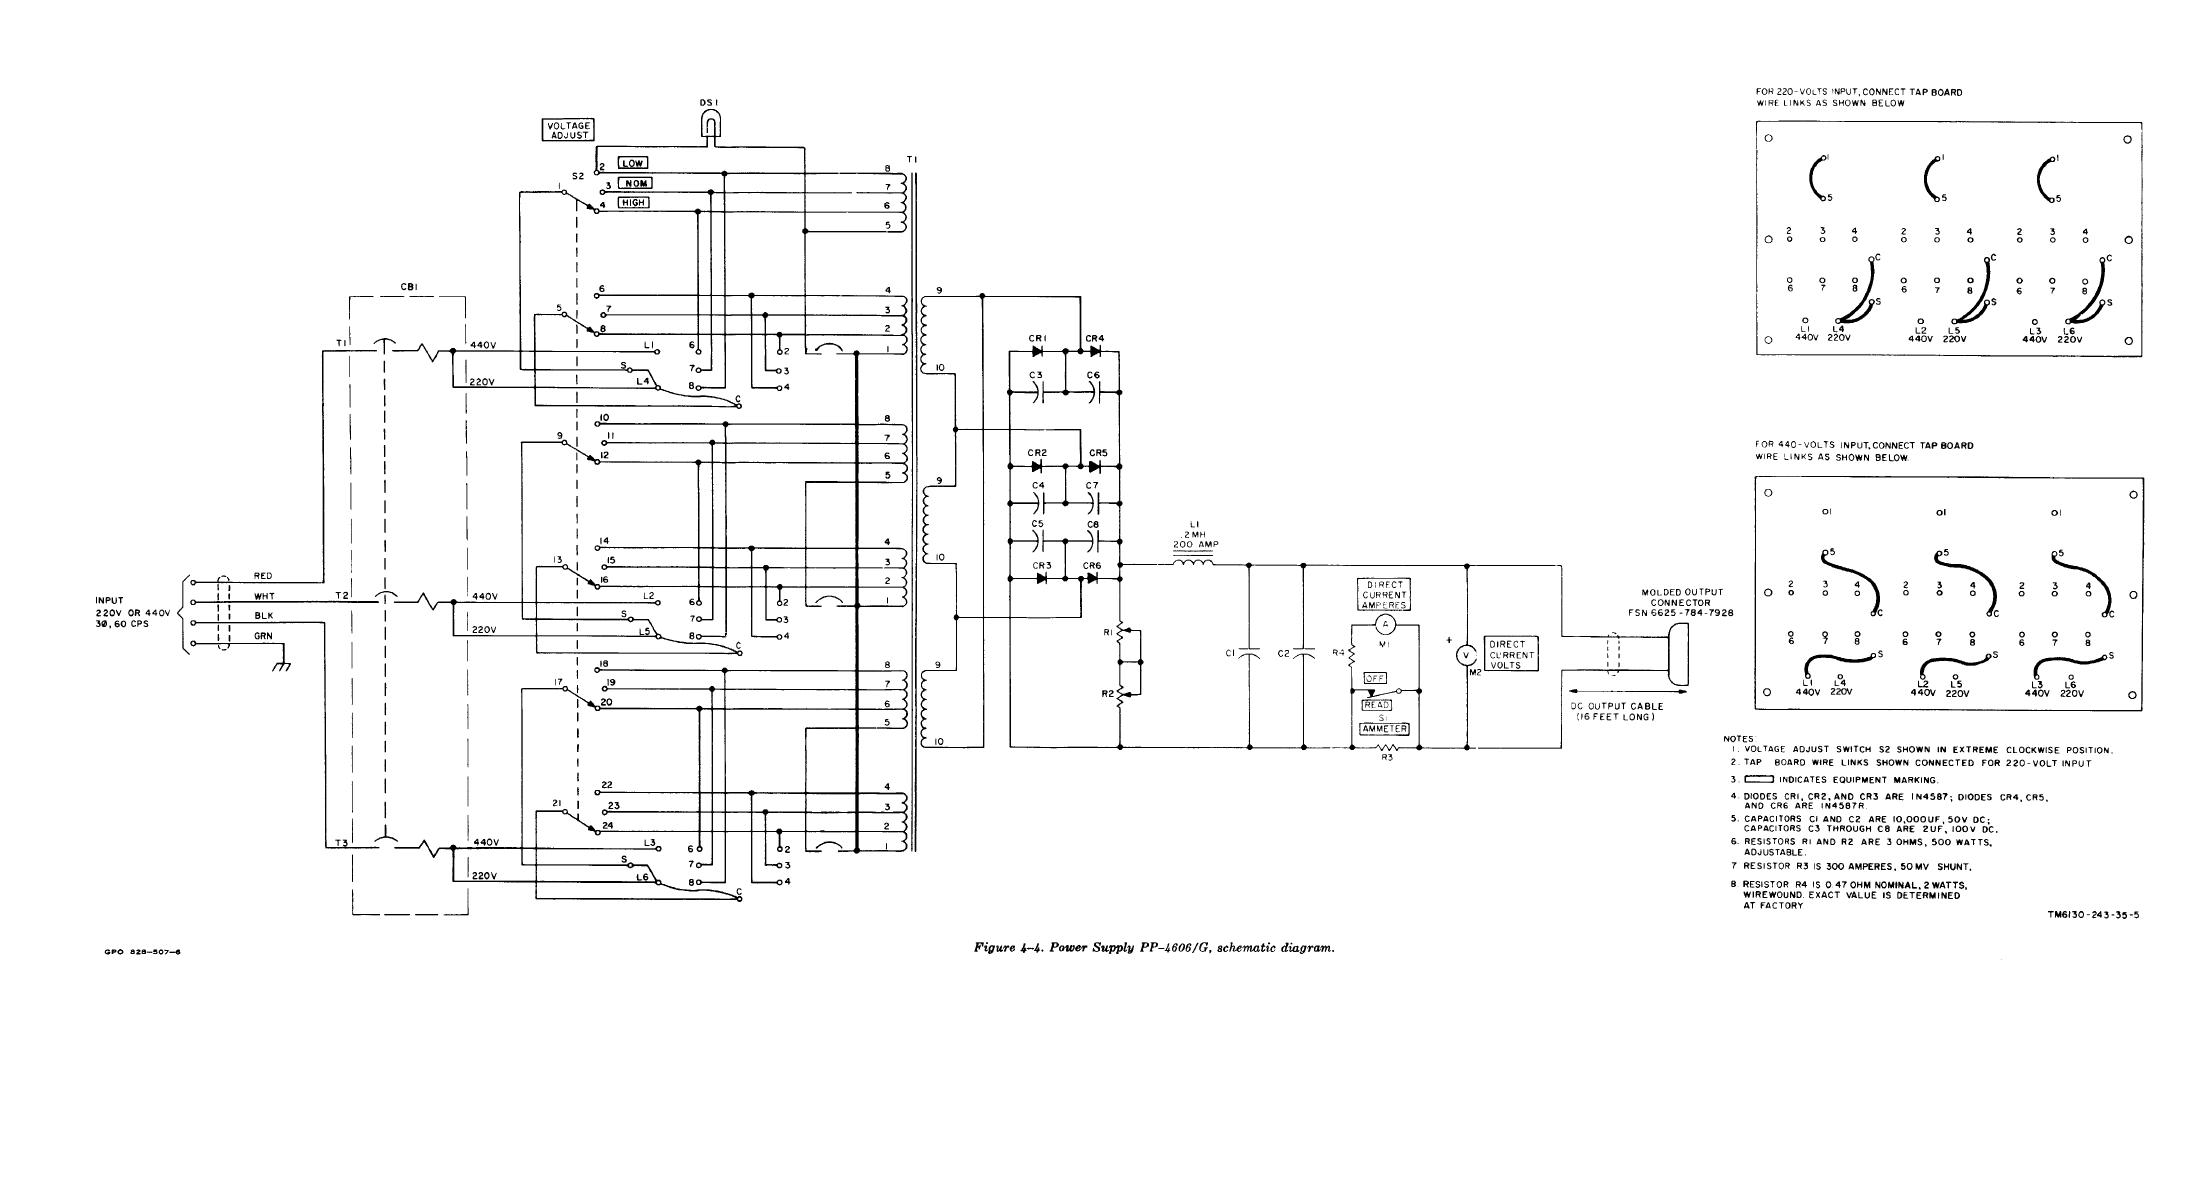 Figure 4 4 Power Supply Pp G Schematic Diagram